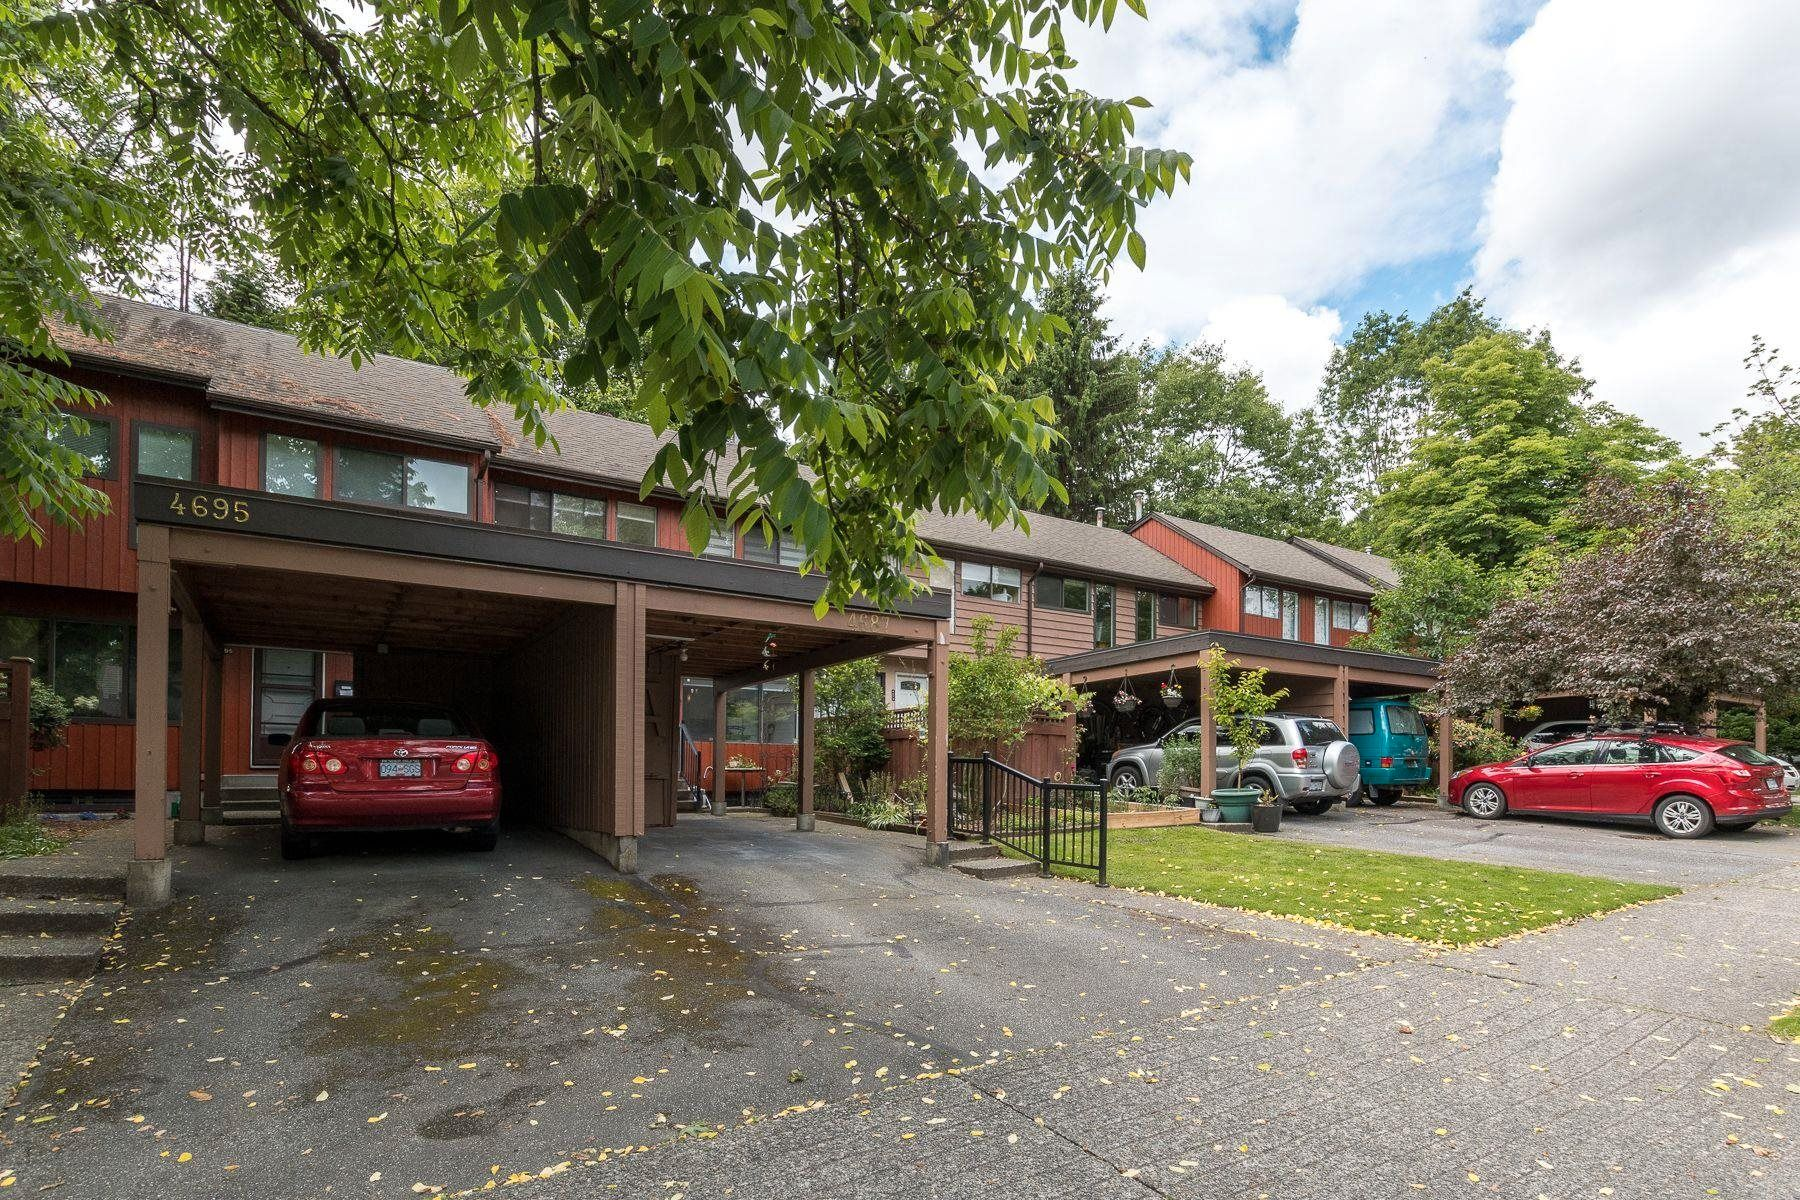 """Main Photo: 4687 GARDEN GROVE Drive in Burnaby: Greentree Village Townhouse for sale in """"Greentree Village"""" (Burnaby South)  : MLS®# R2608954"""